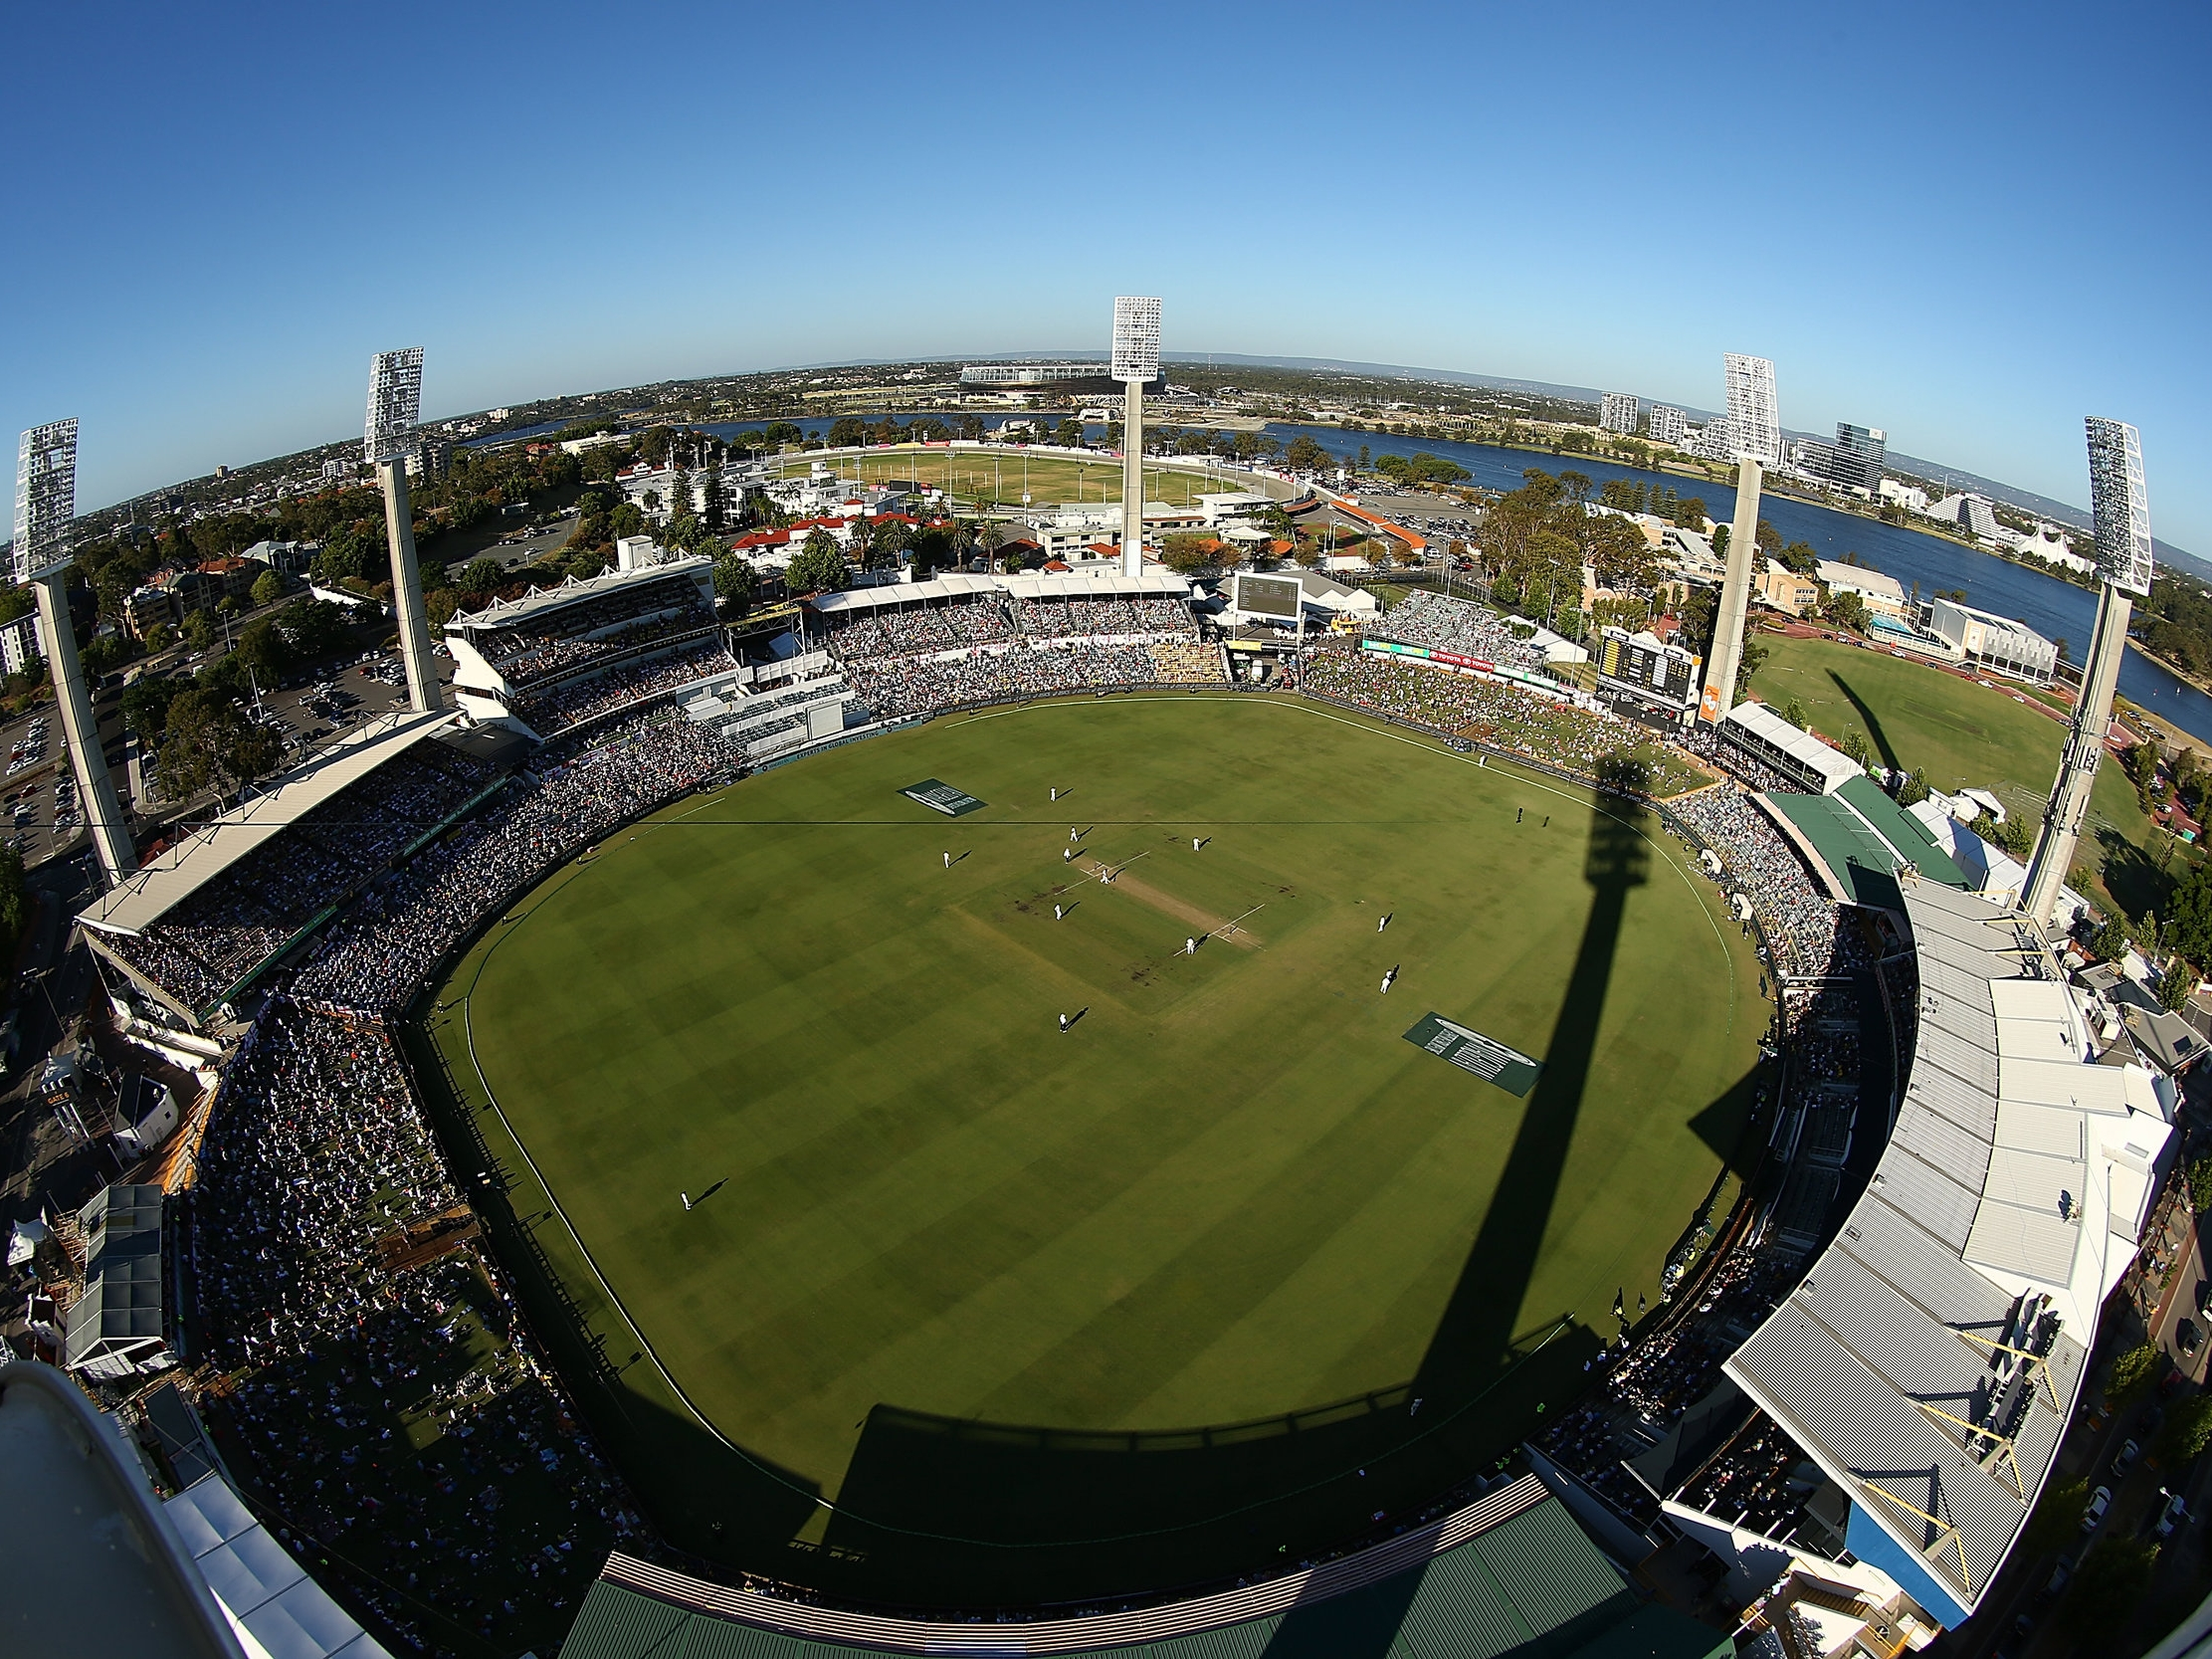 14. WACA Museum - WACA Ground. Entry via the Museum/Tours Gate Hale Street, near the WACA logo corner of Nelson Crescent.Museum open Mon to Fri from 10am to 3pm (except public holidays). Admission with donation. Visit the WACA website for further details.Ground tours available Mon to Fri at 10am and 1pm. Fees apply.Experience the rich heritage and history of the Western Australian Cricket Association (1885) and the WACA Ground through museum displays and ground tours which exist to inspire all to enjoy and play the great game of cricket.